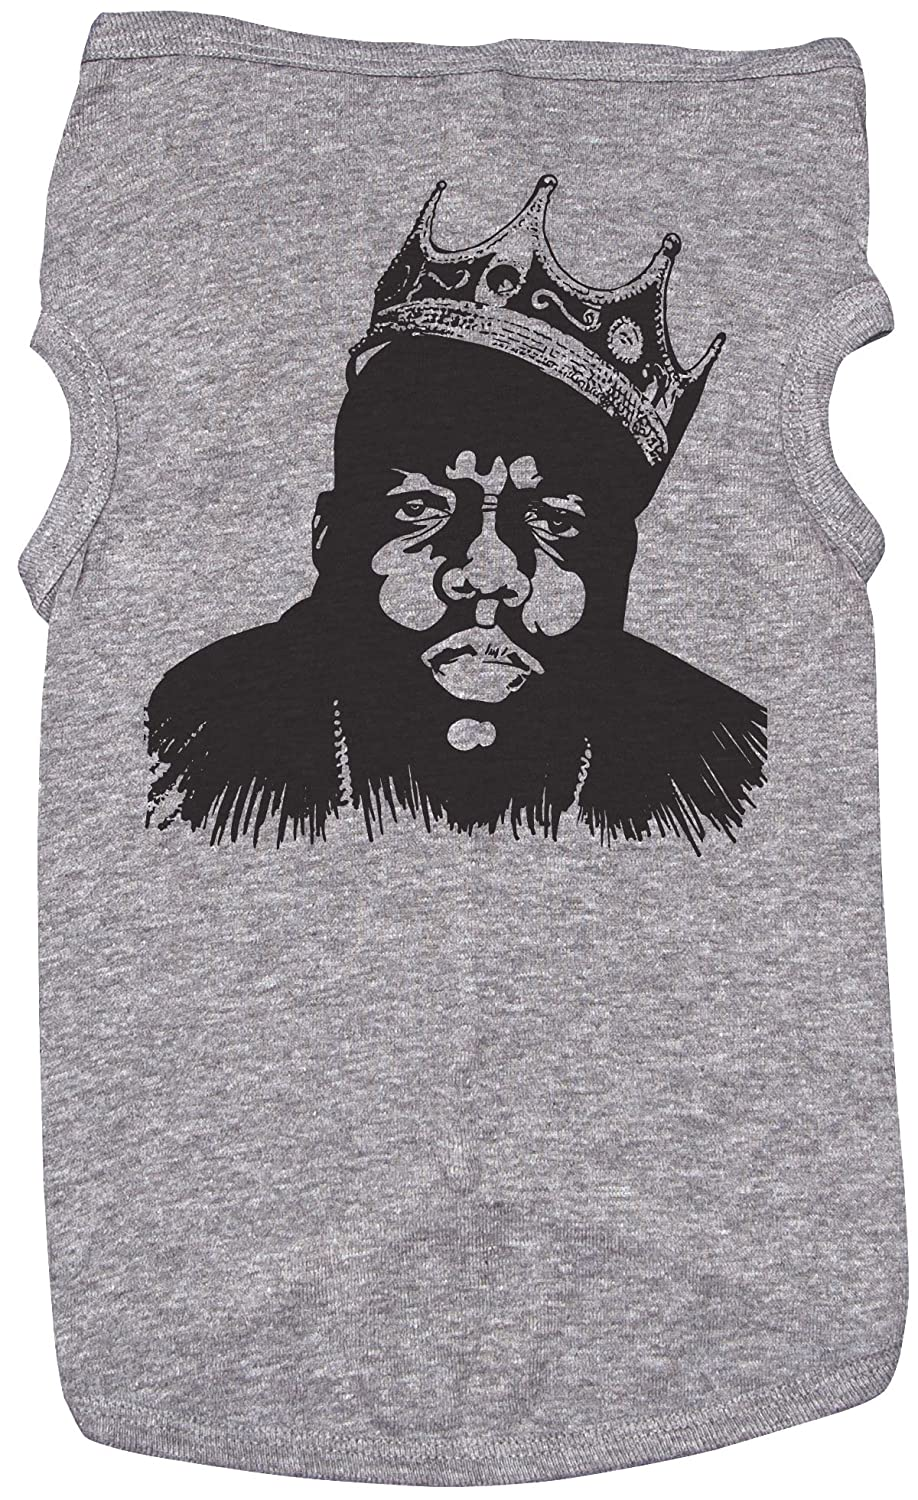 Large Biggie Smalls Shirt for Dogs Biggie Smalls Grey Top for Dogs and Puppies (Large)